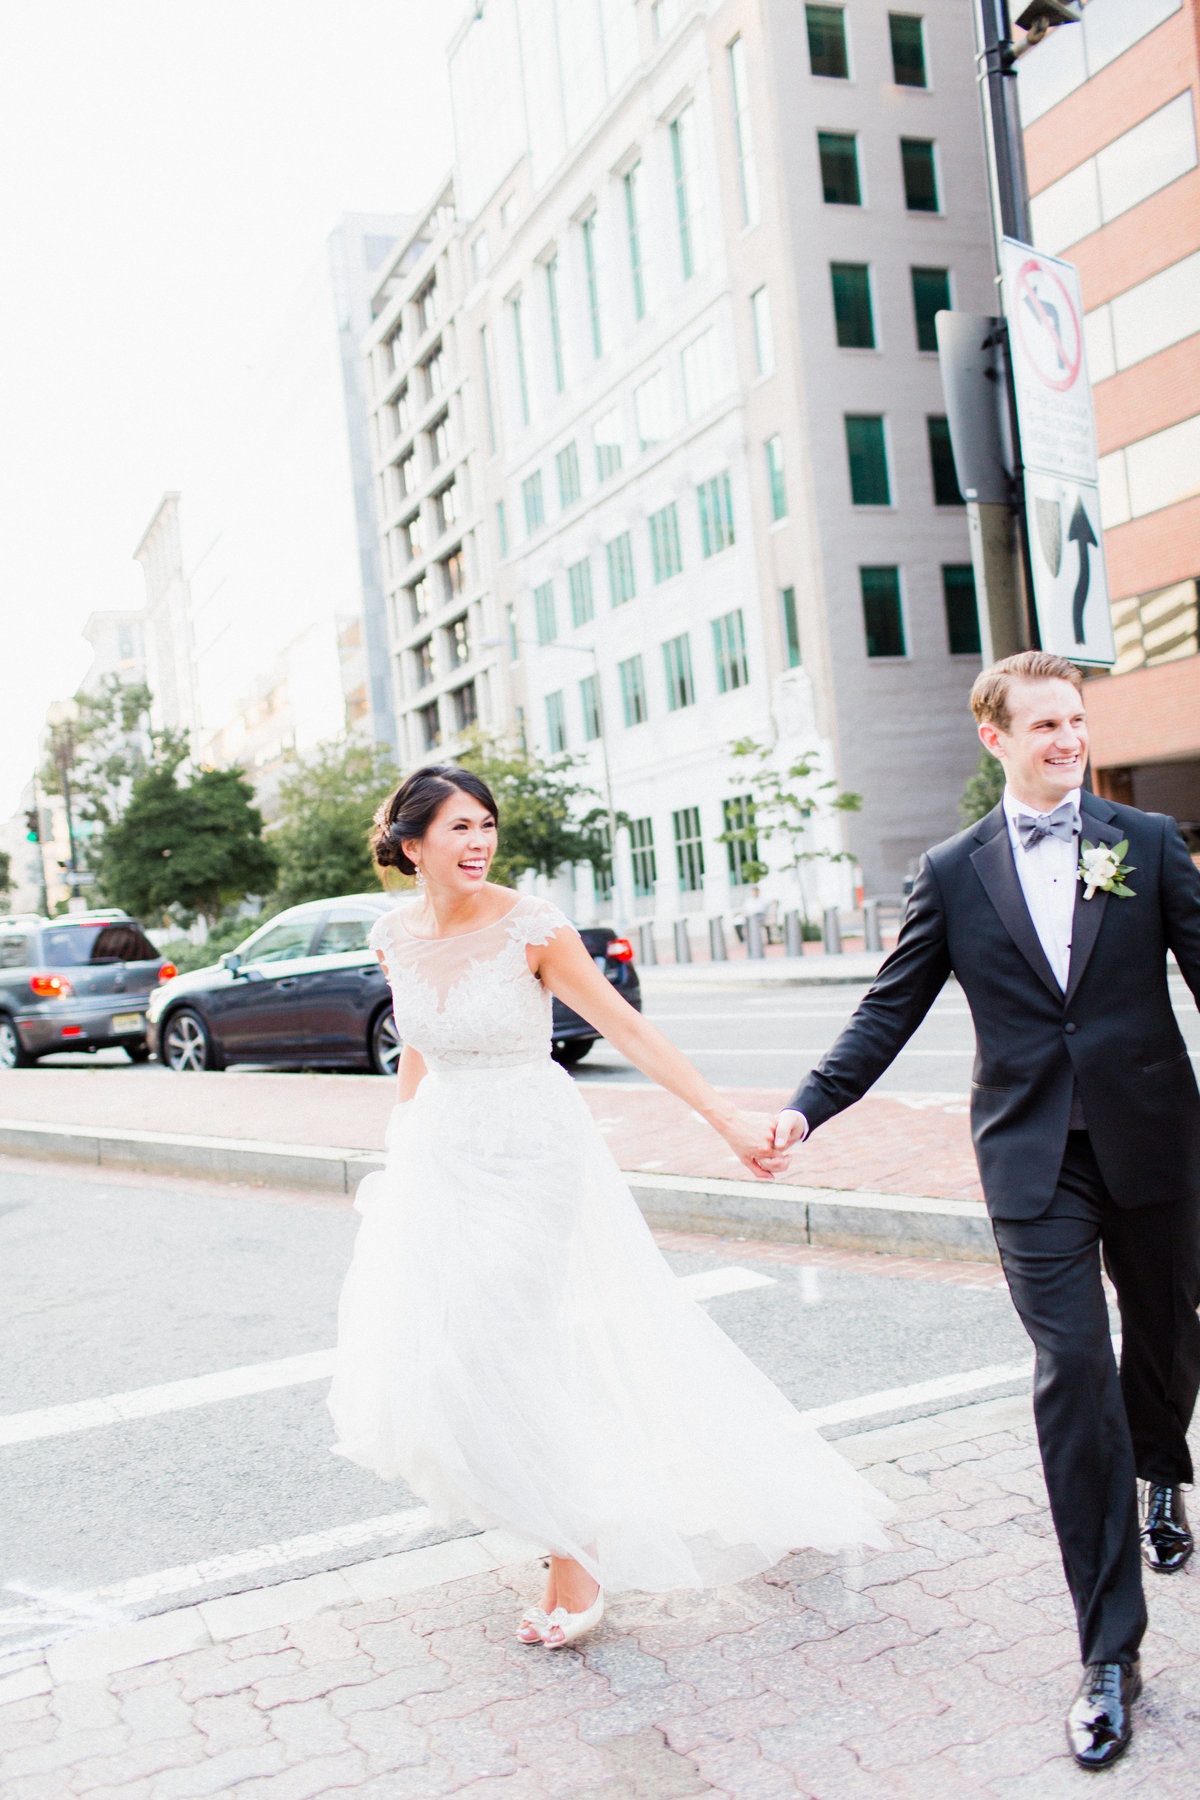 25_unposed_city_wedding_portrait